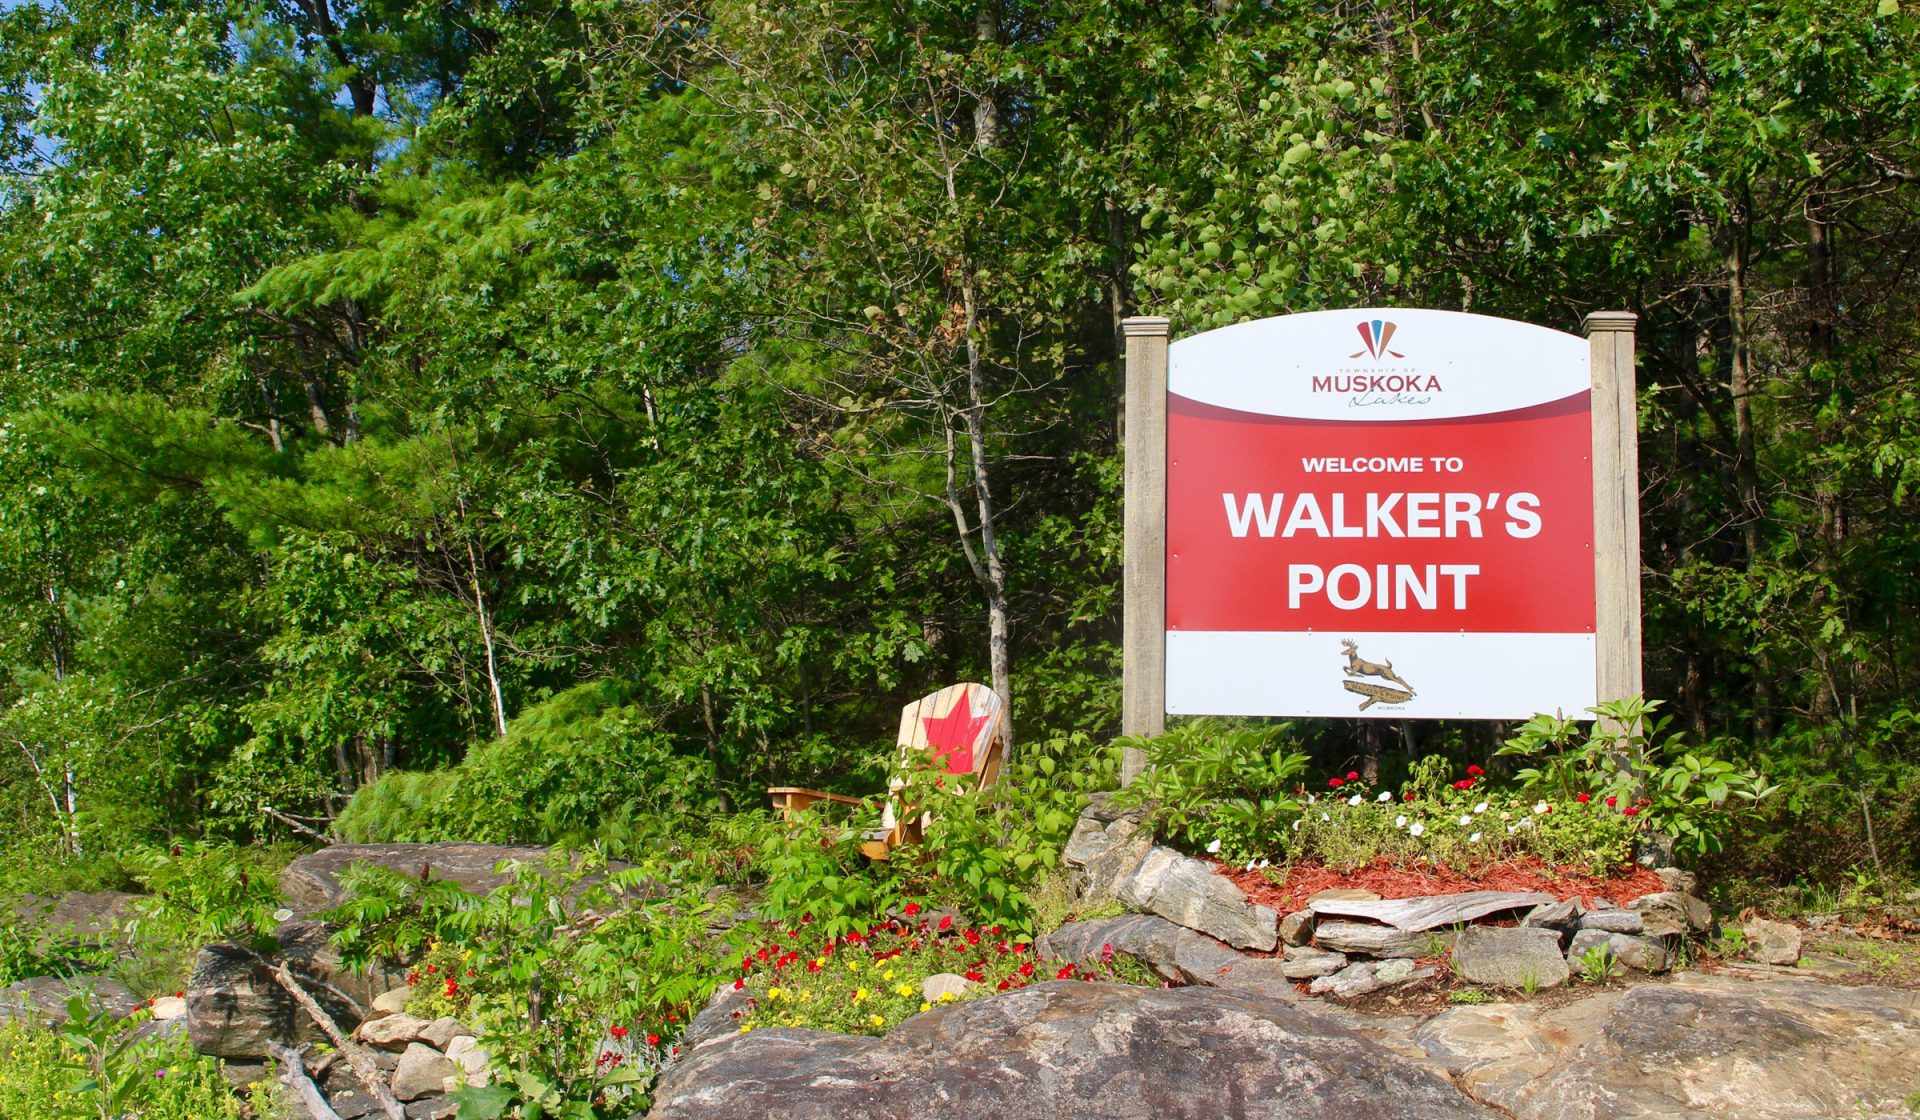 Muskoka Lakes has a new Lookout Trail